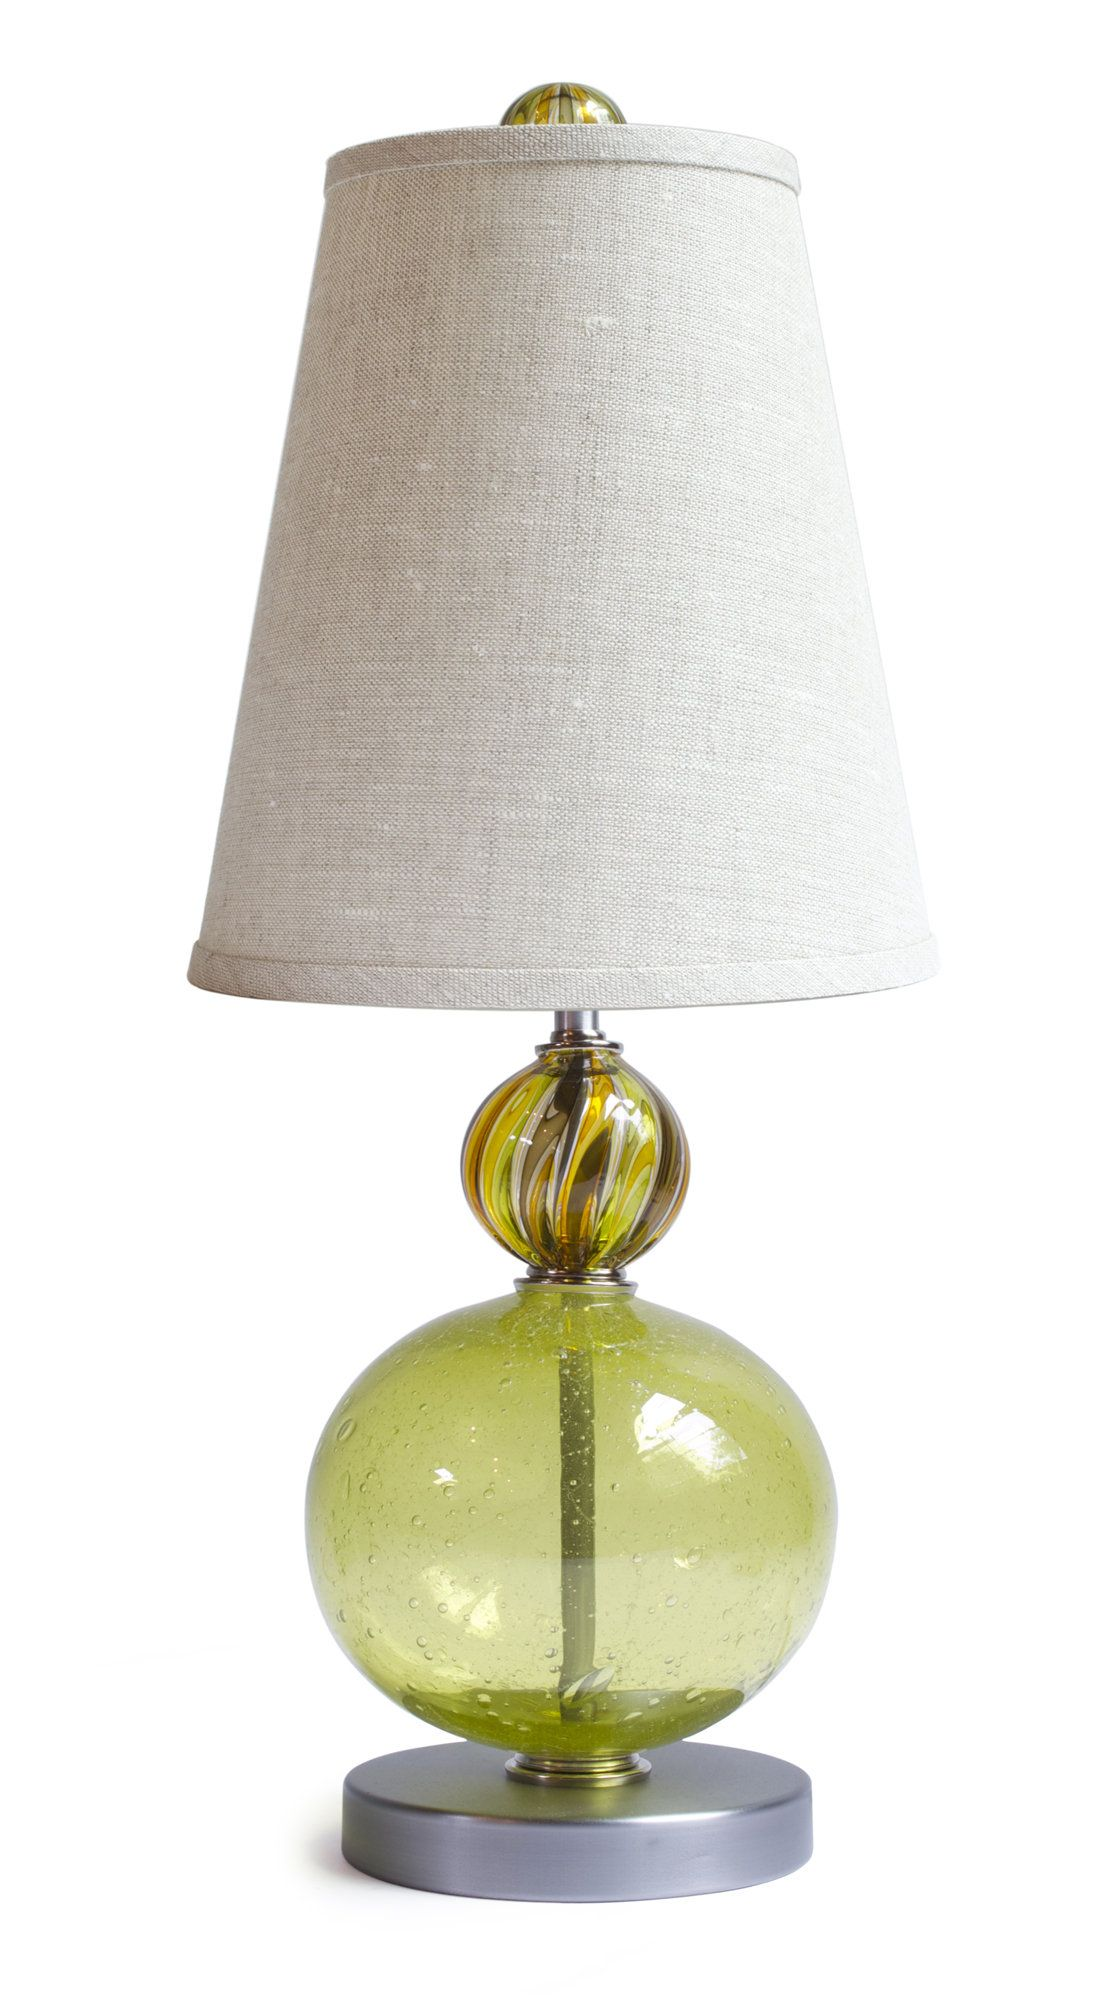 Beautiful Susan Lamp By Tracy Glover (Art Glass Table Lamp